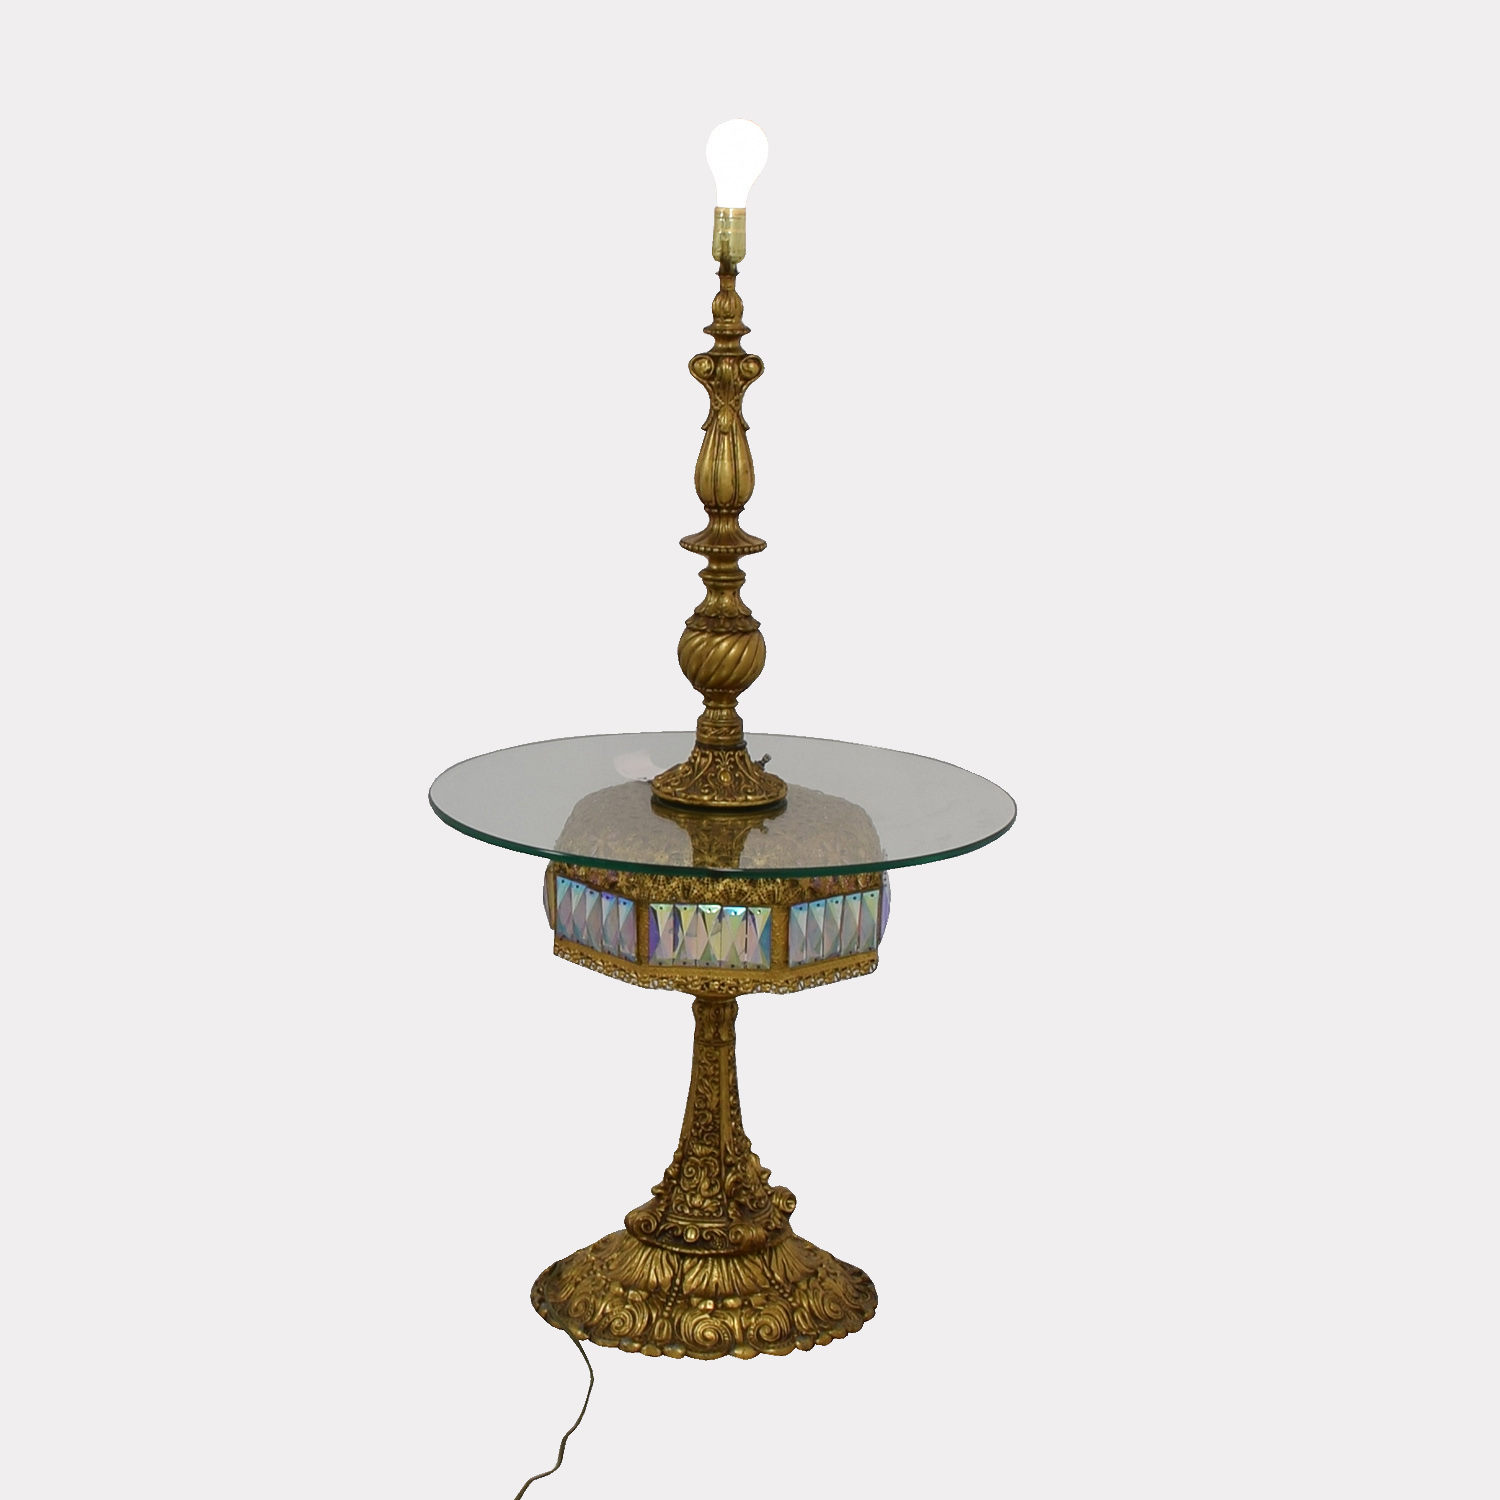 Vintage Gold Table Lamp Decor